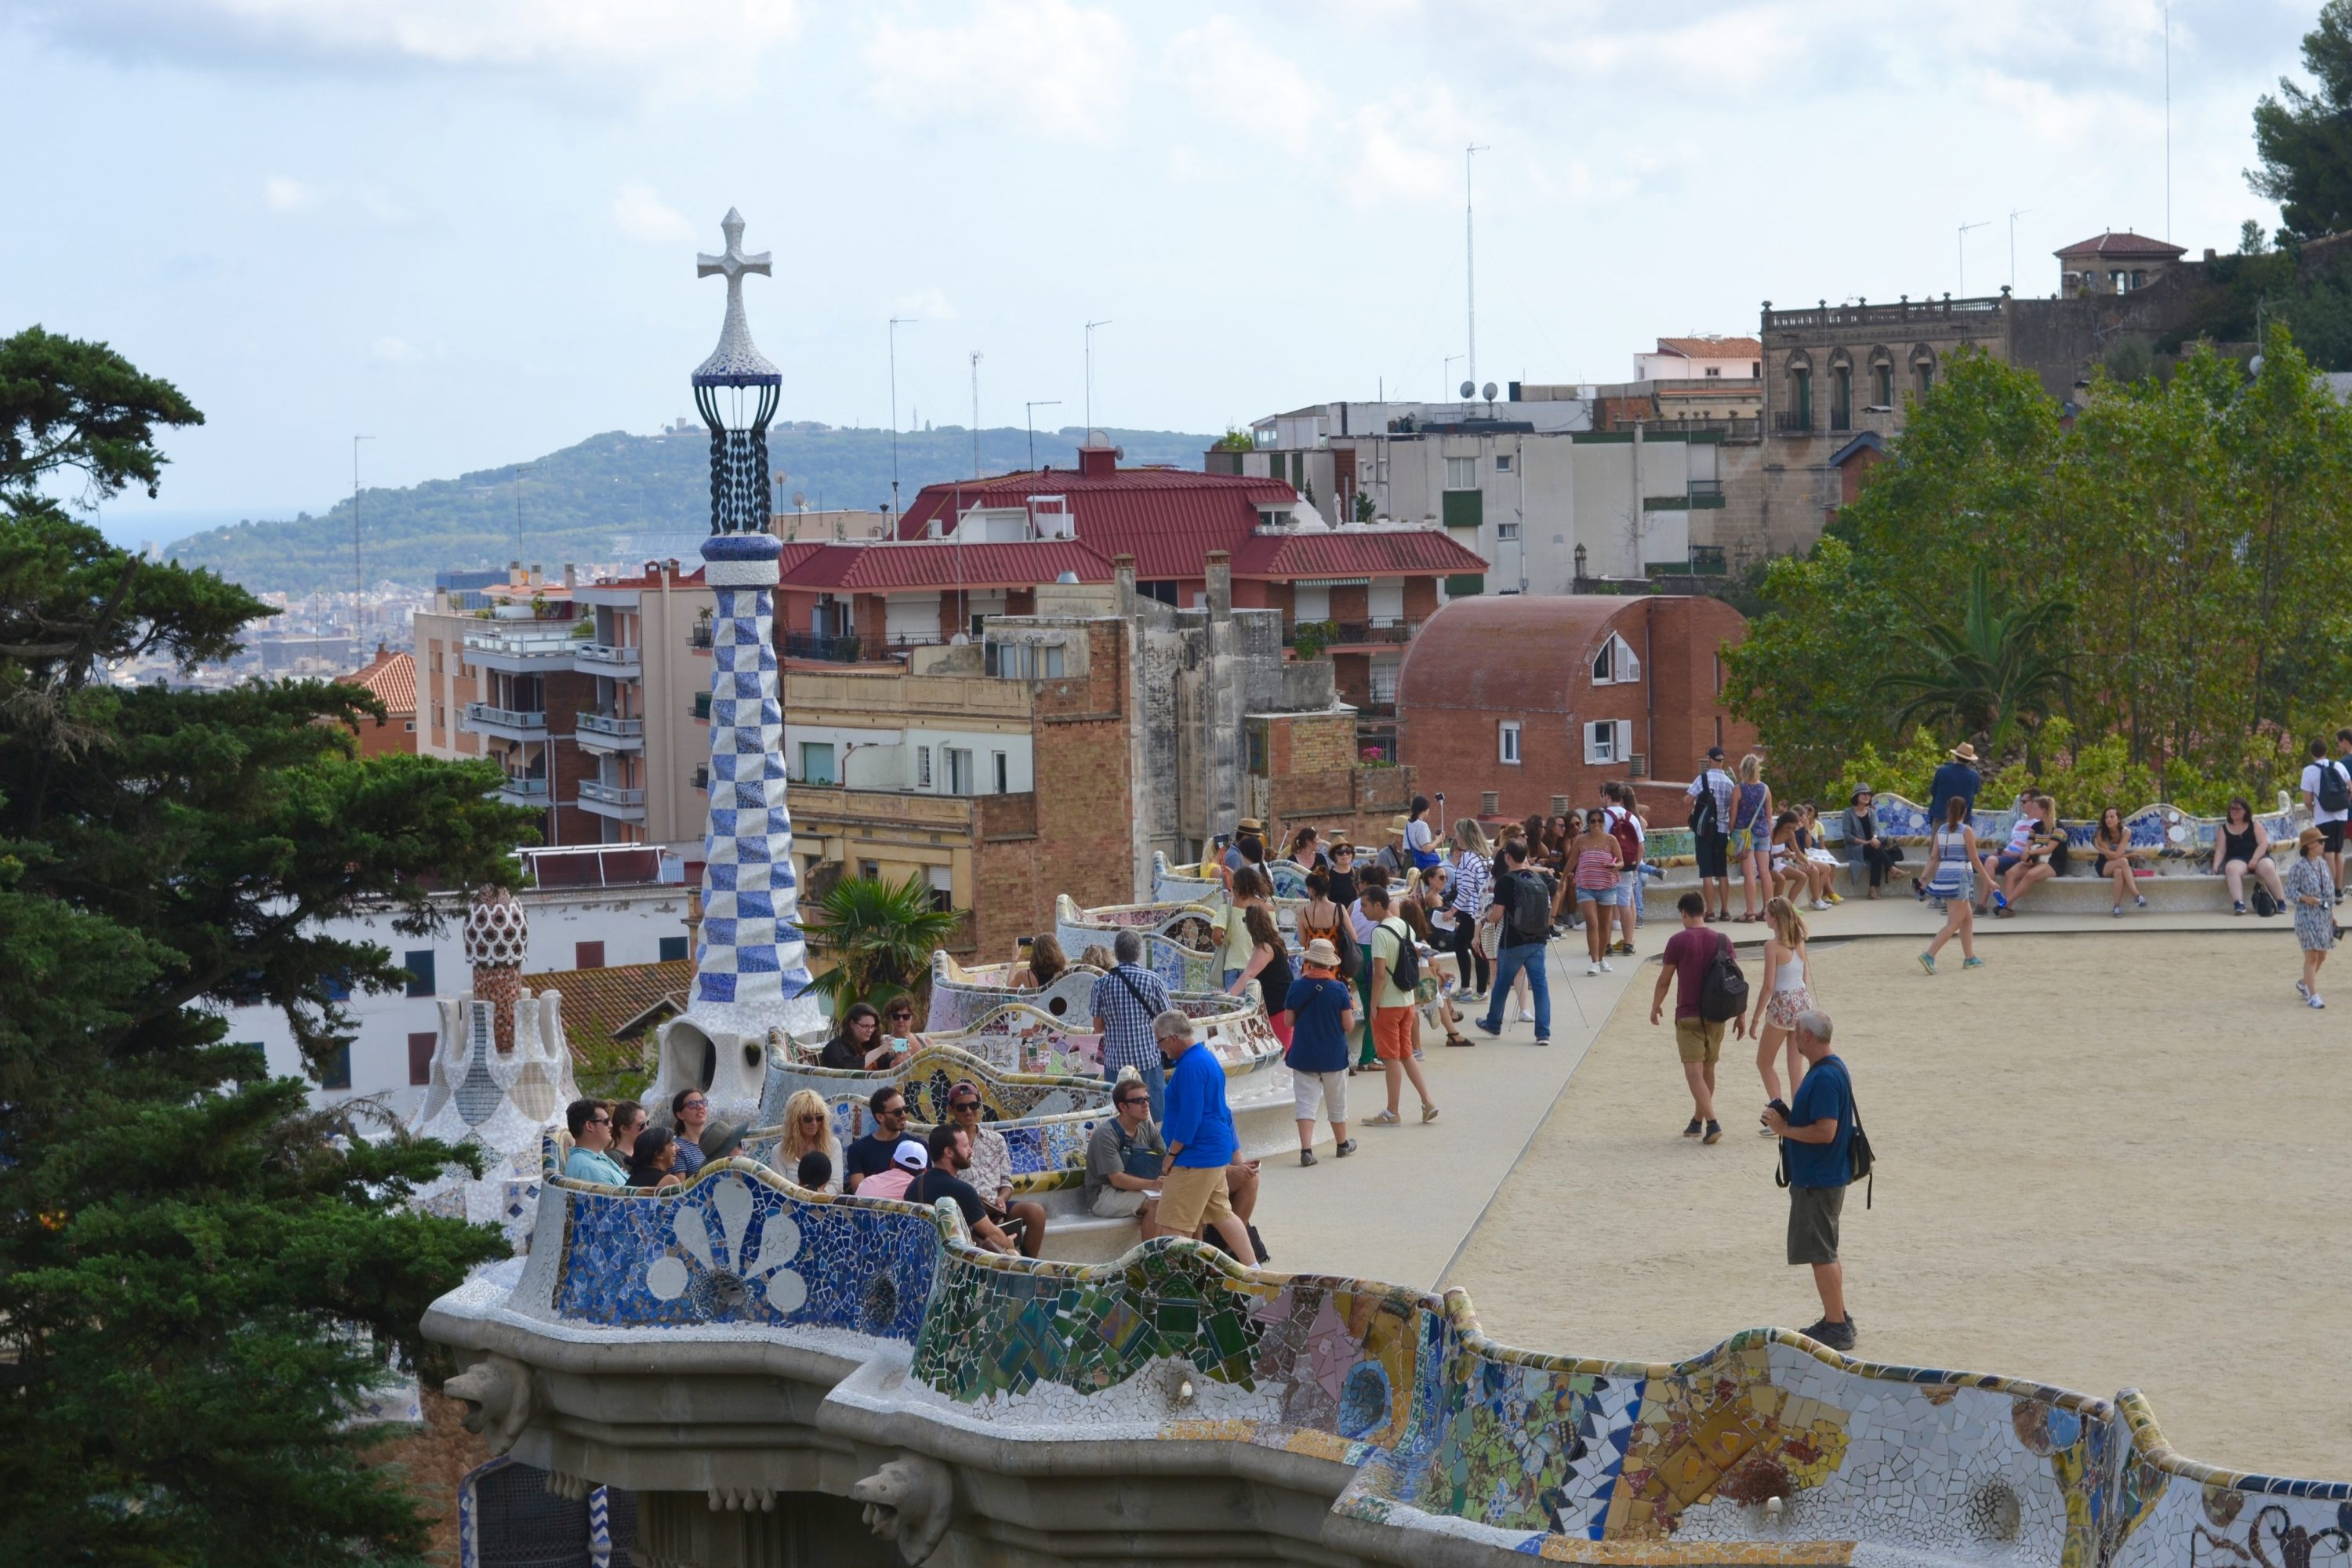 We saw a liiiitle of Park Guell